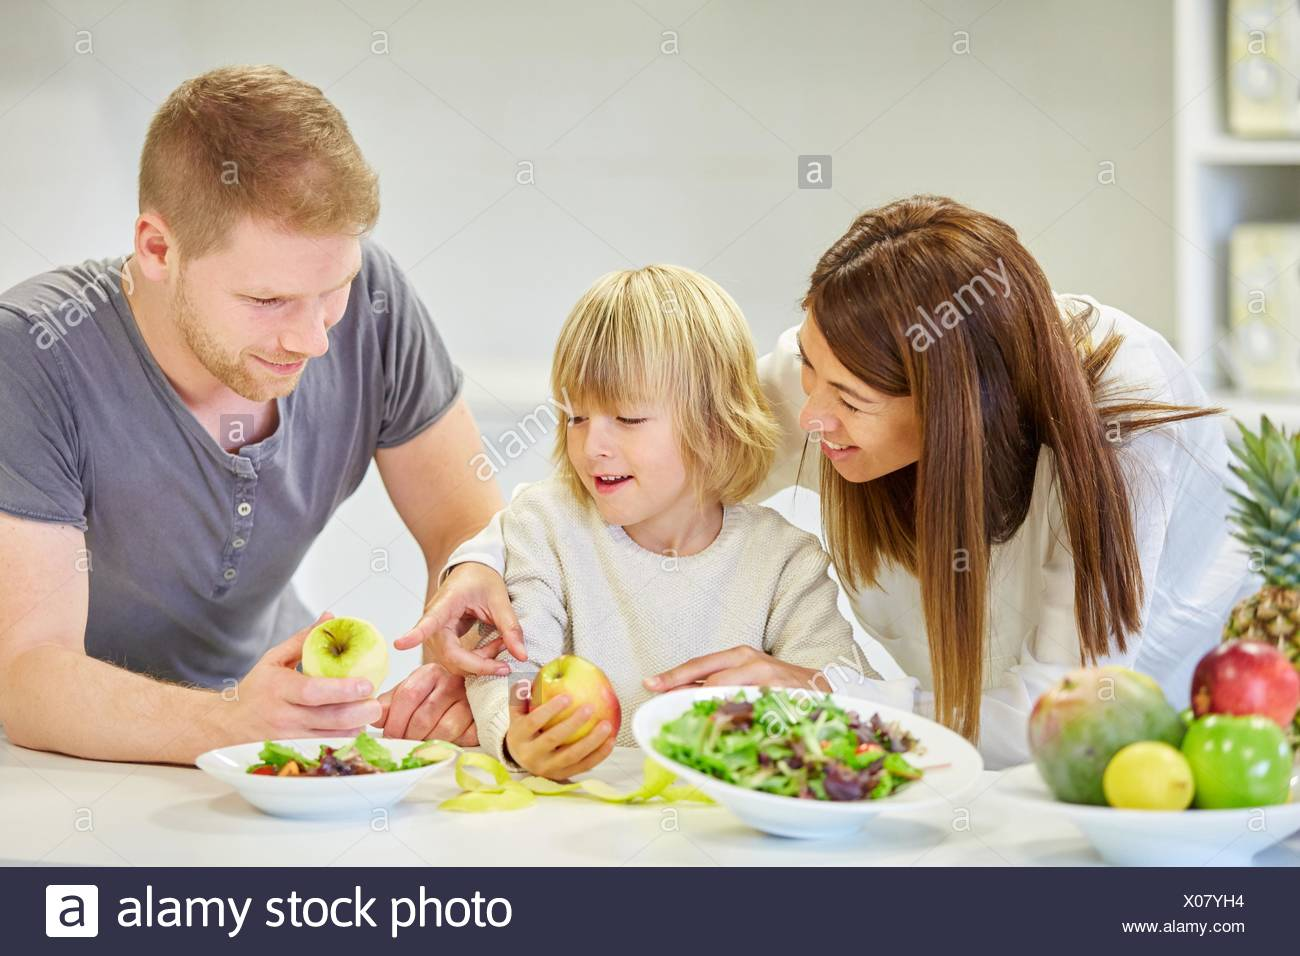 Family in the kitchen. Parents and son. Healthy eating. Healthy growth. Eating an apple. - Stock Image